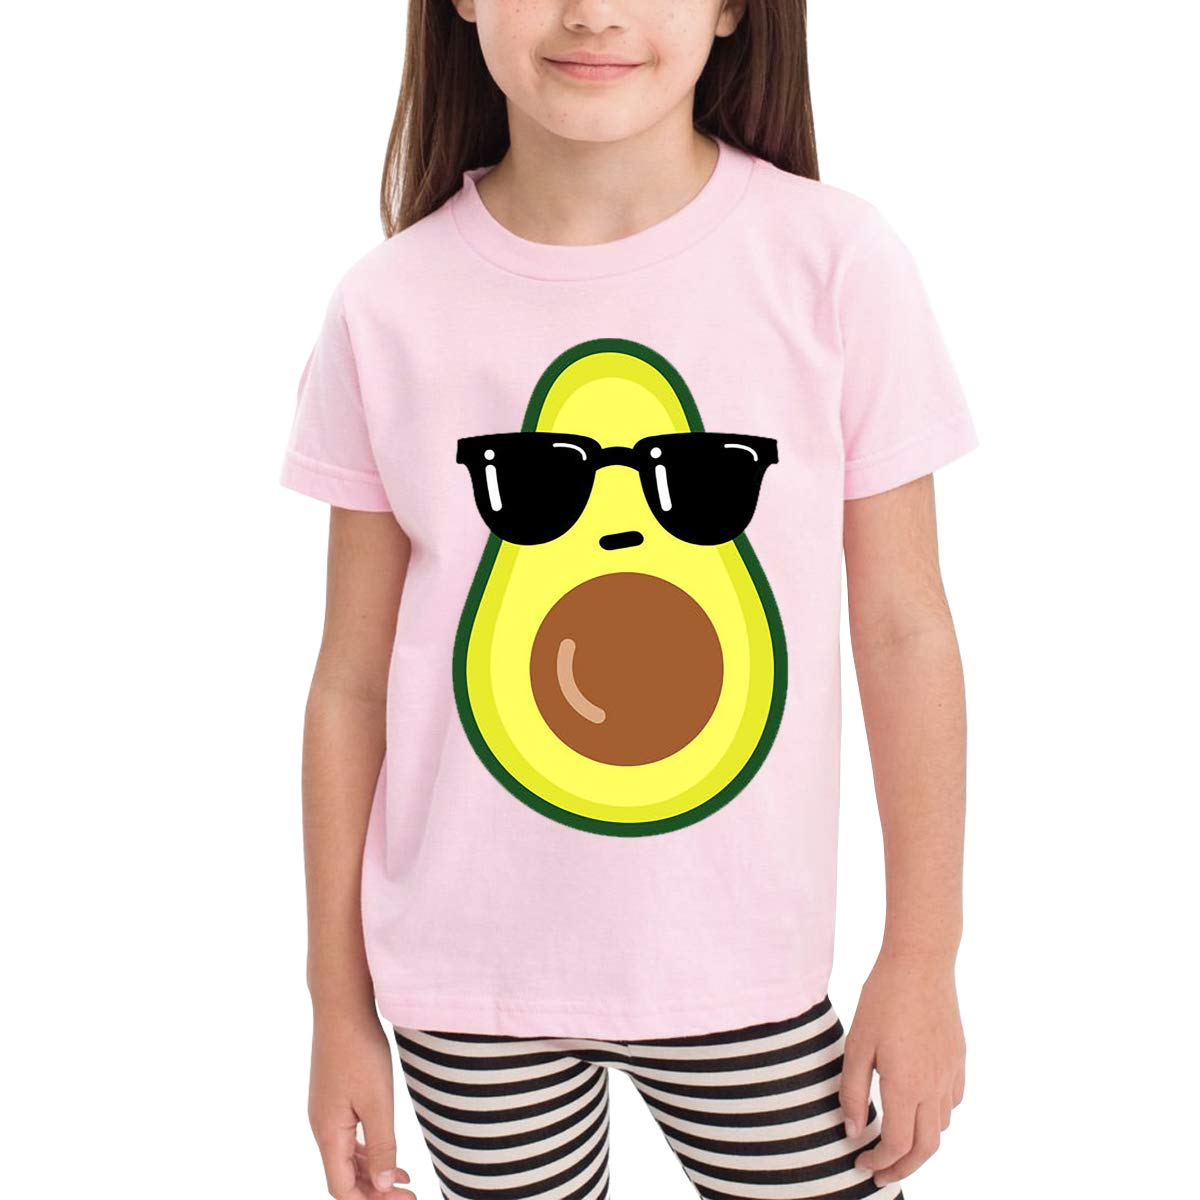 Onlybabycare Cool Avocado Pink Cotton T Shirt Lightweight Breathable Solid Tee for Toddler Boys Girls Kids